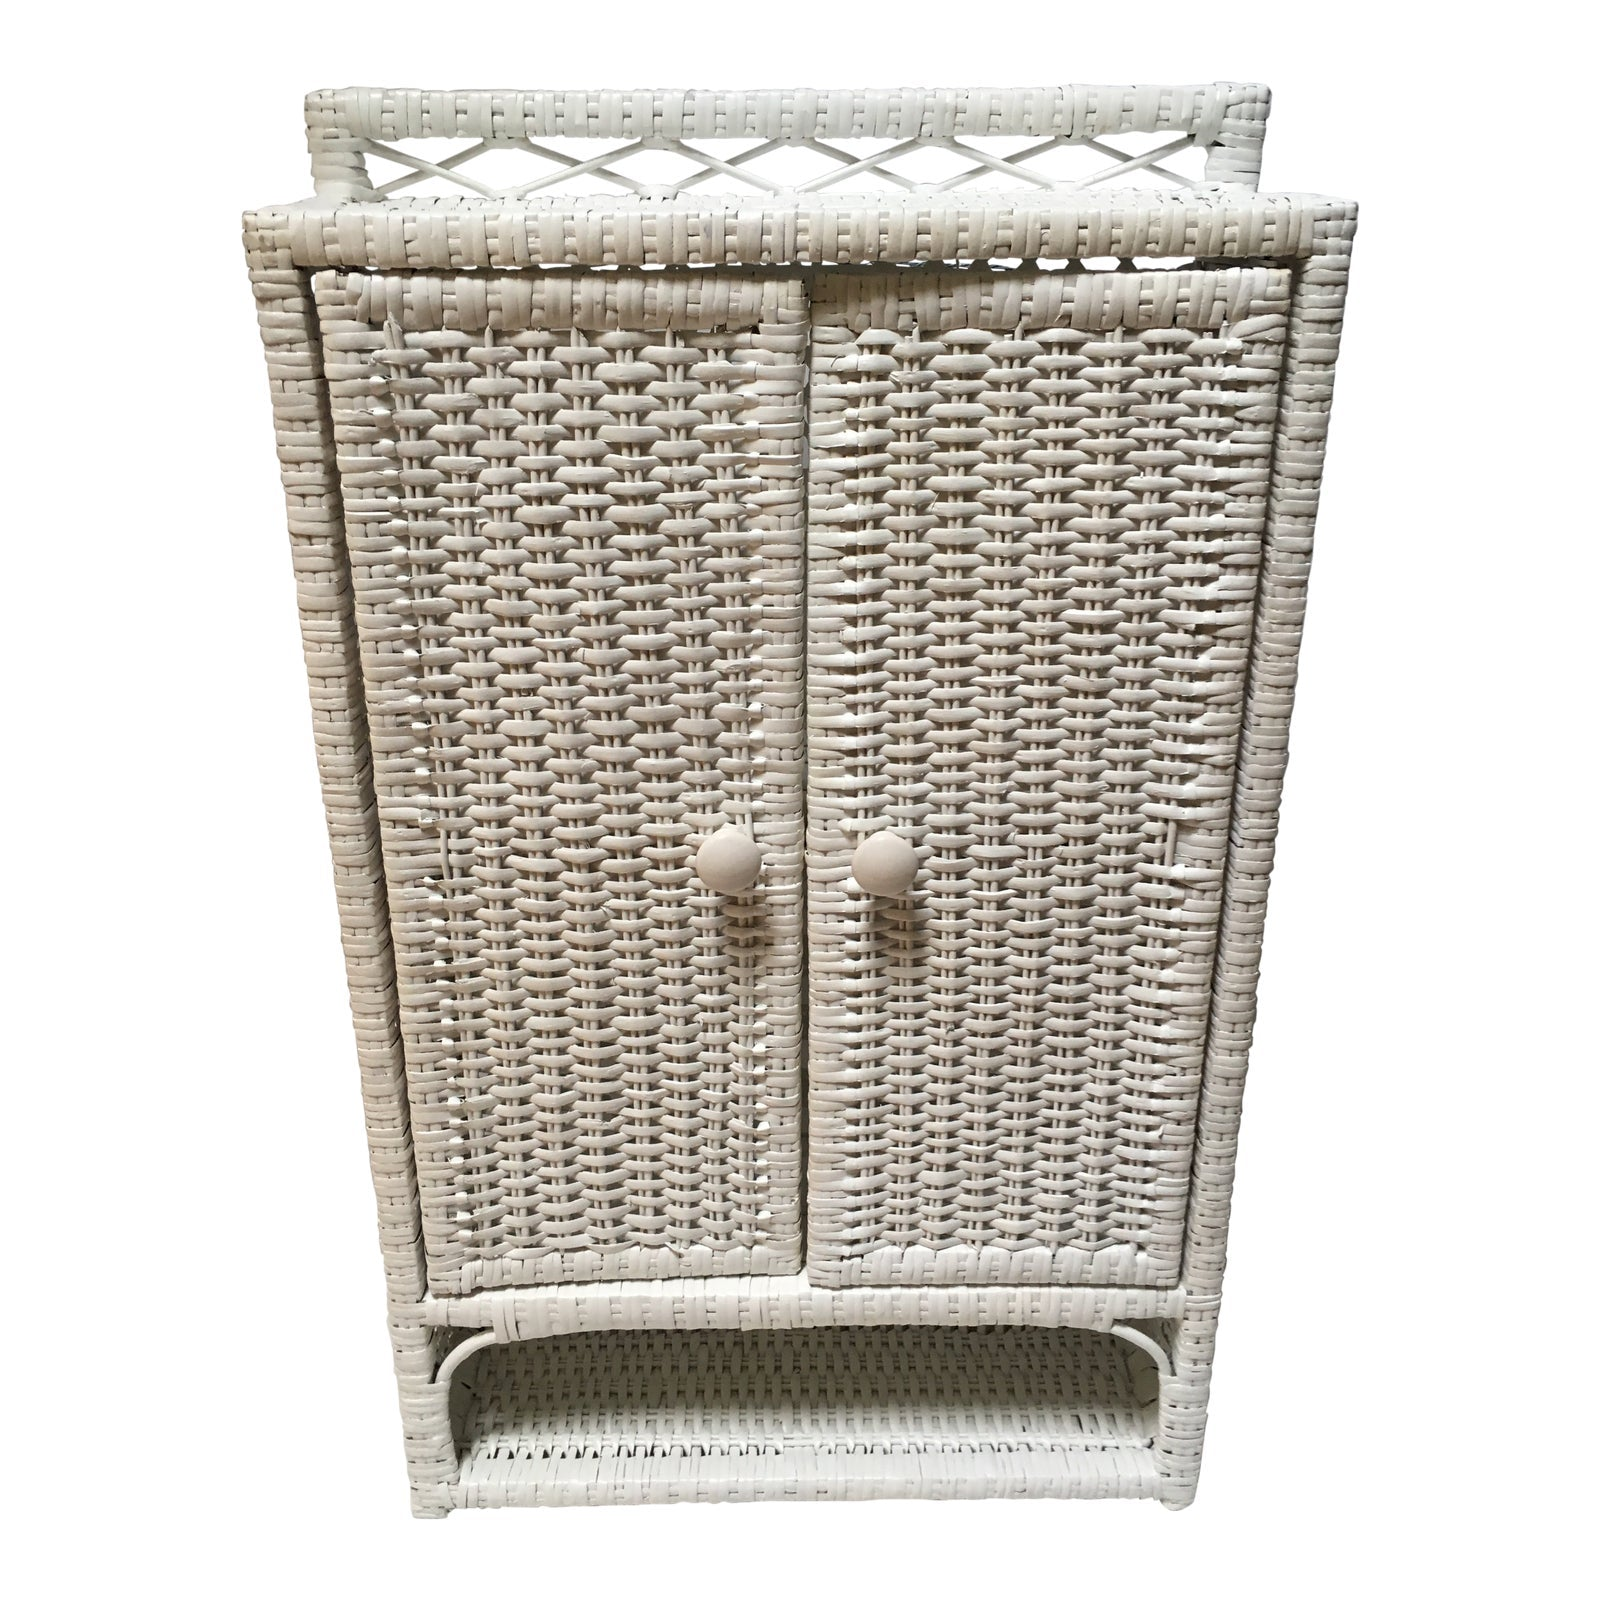 20th Century Boho Chic Wicker and Cane Medicine Cabinet